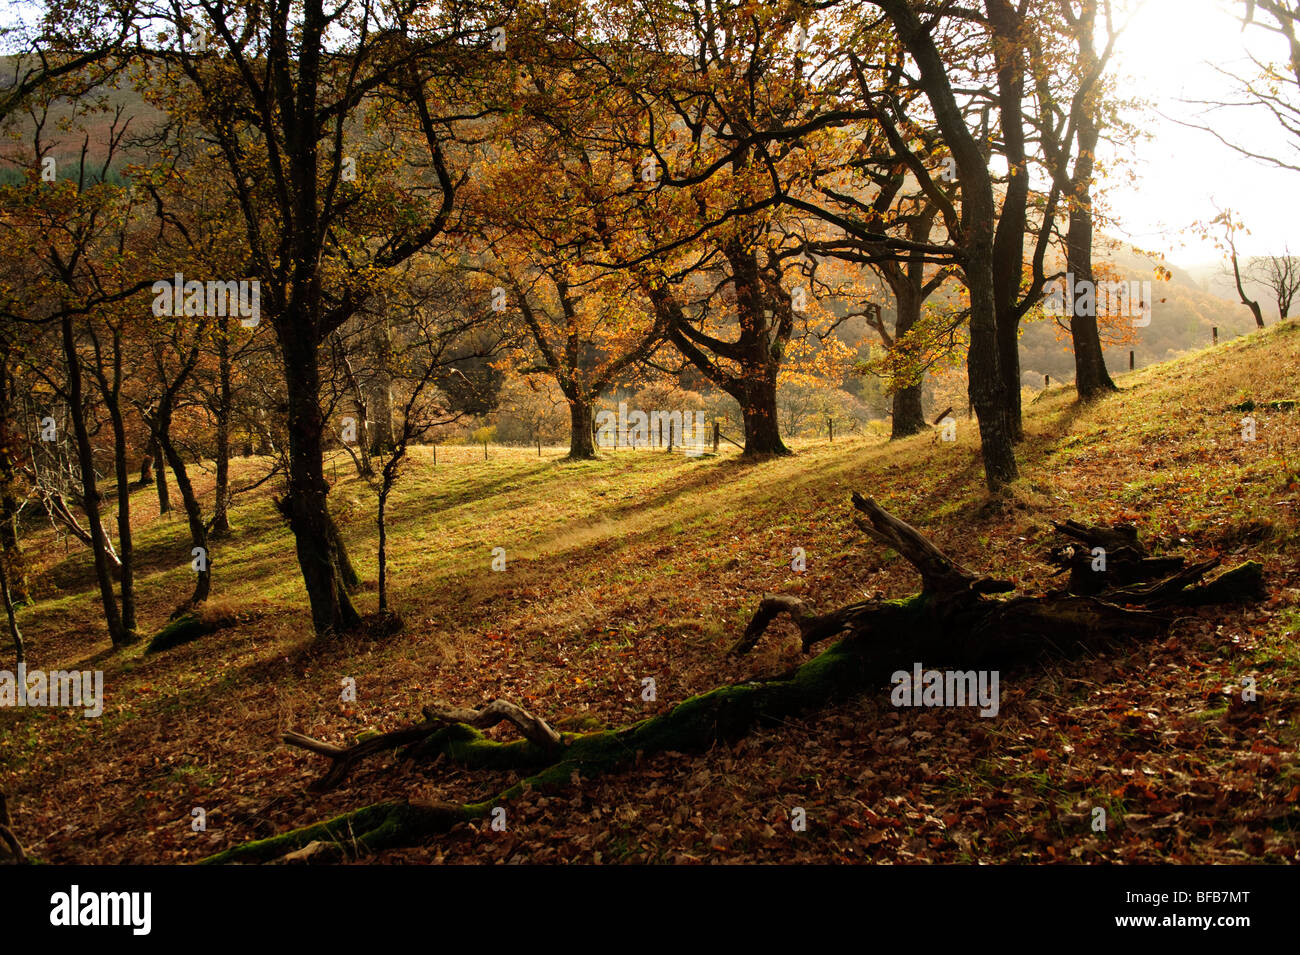 Old oak woodland in the Wye river valley, autumn afternoon, Wales UK - Stock Image